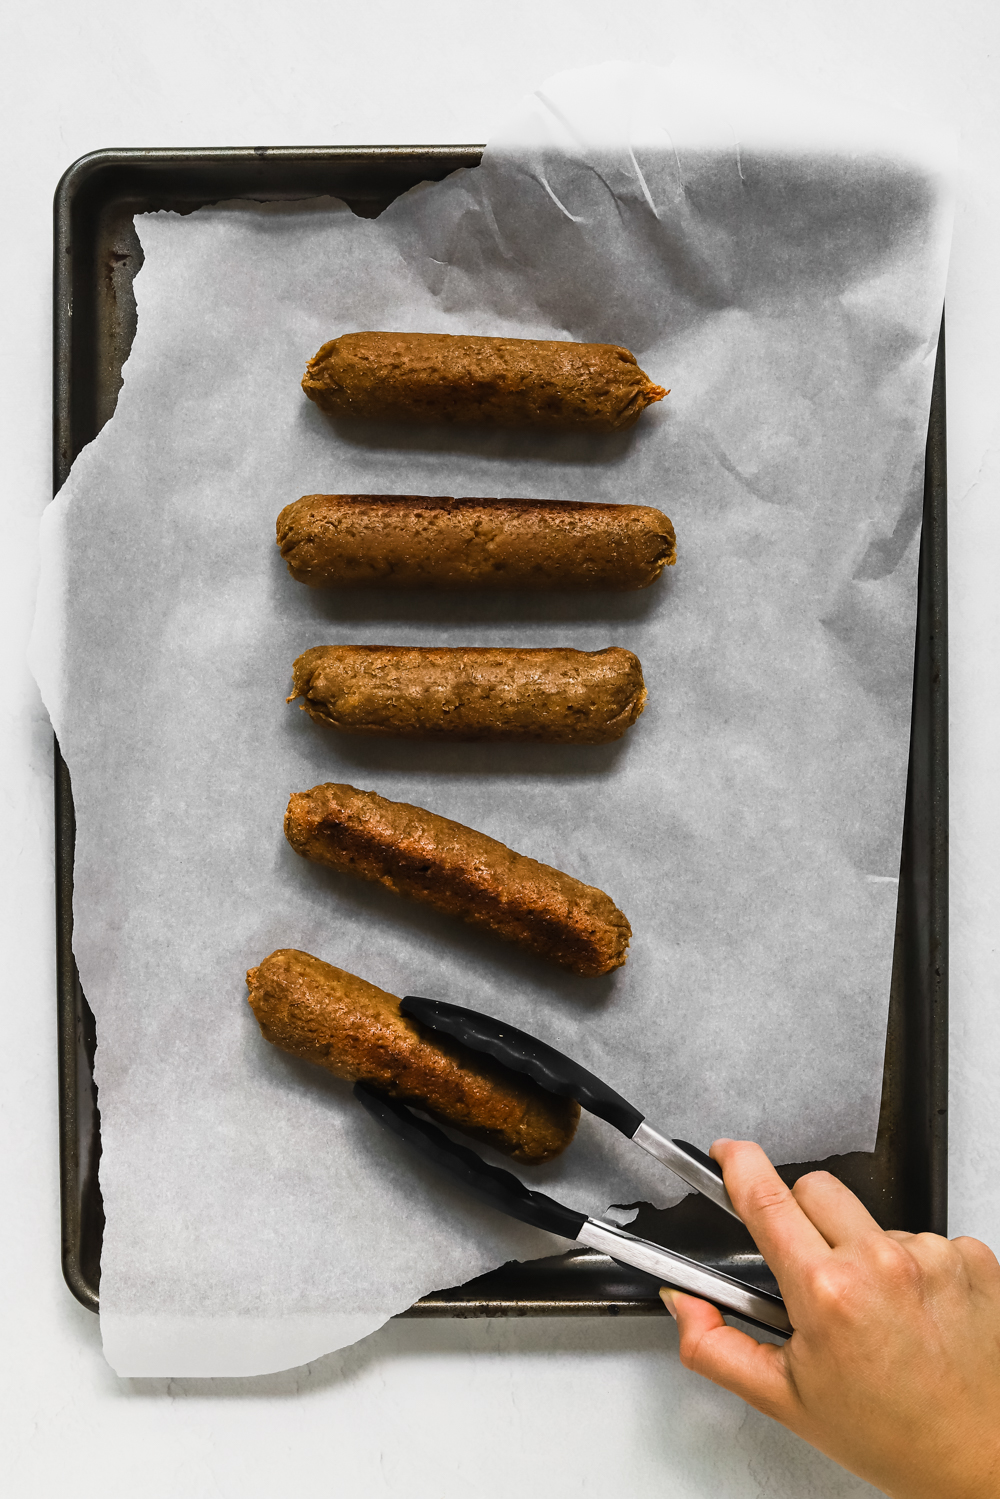 Grabbing a cooked seitan sausage off a baking tray with tongs.